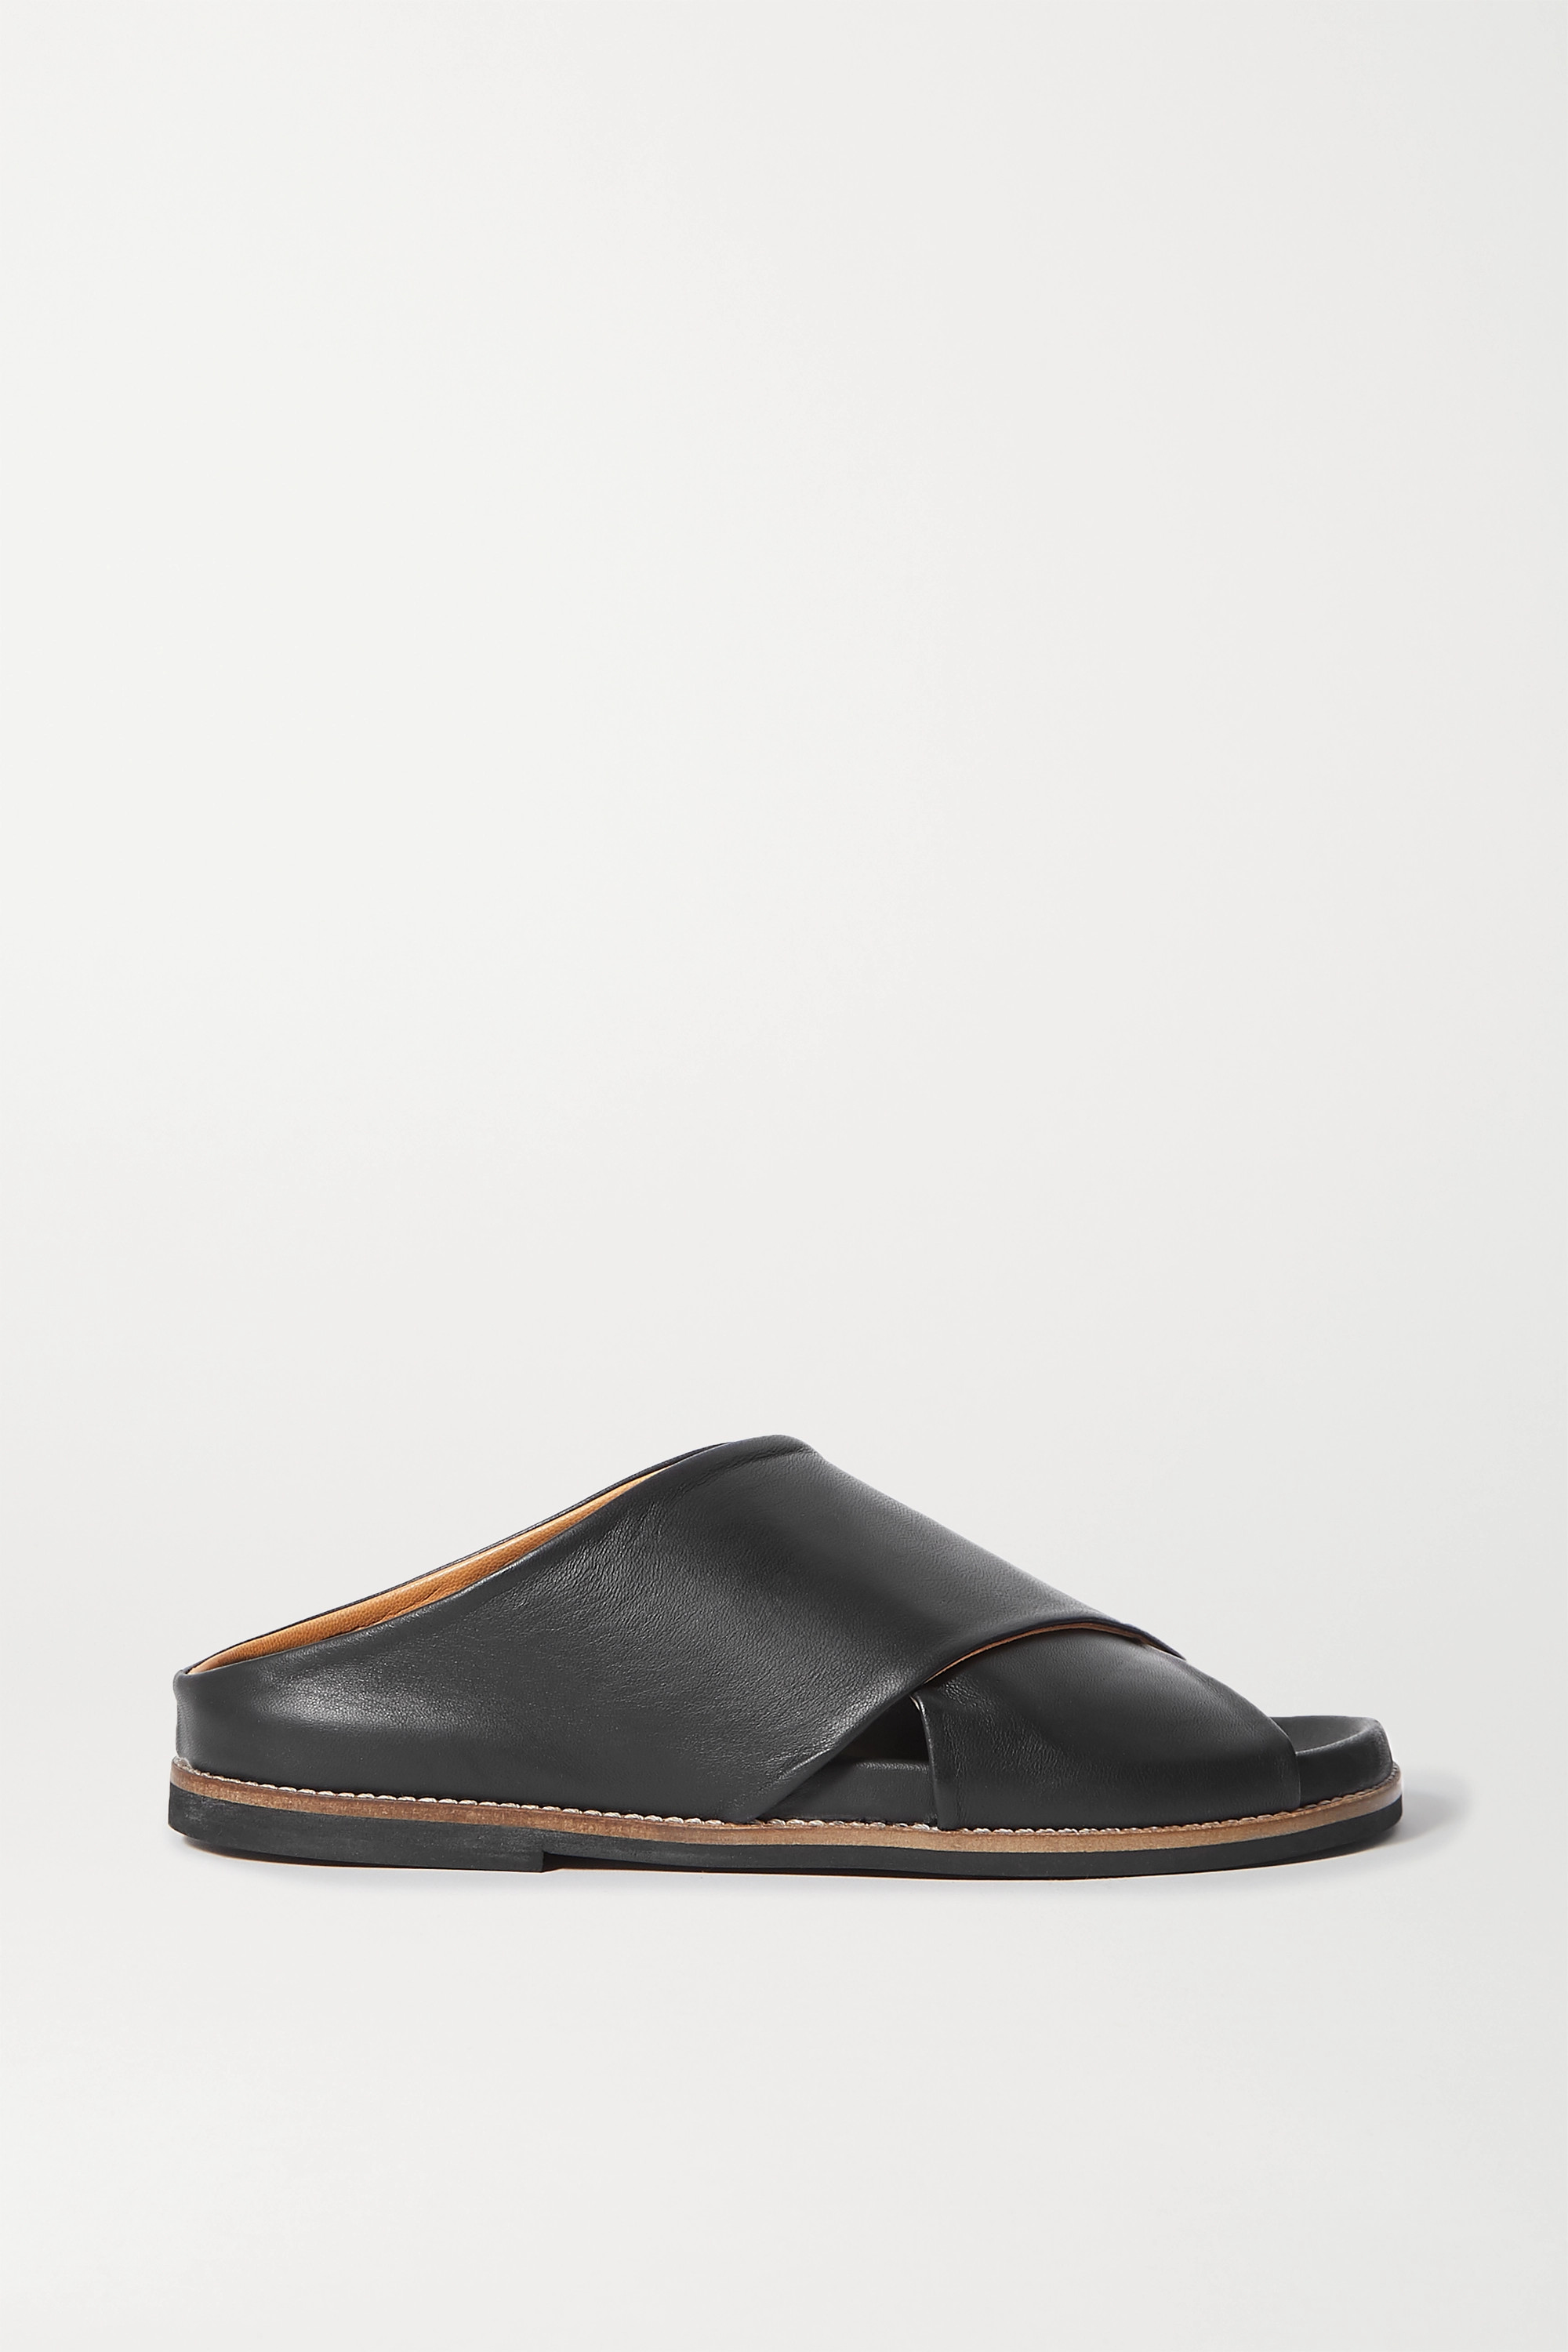 GANNI Leather sandals